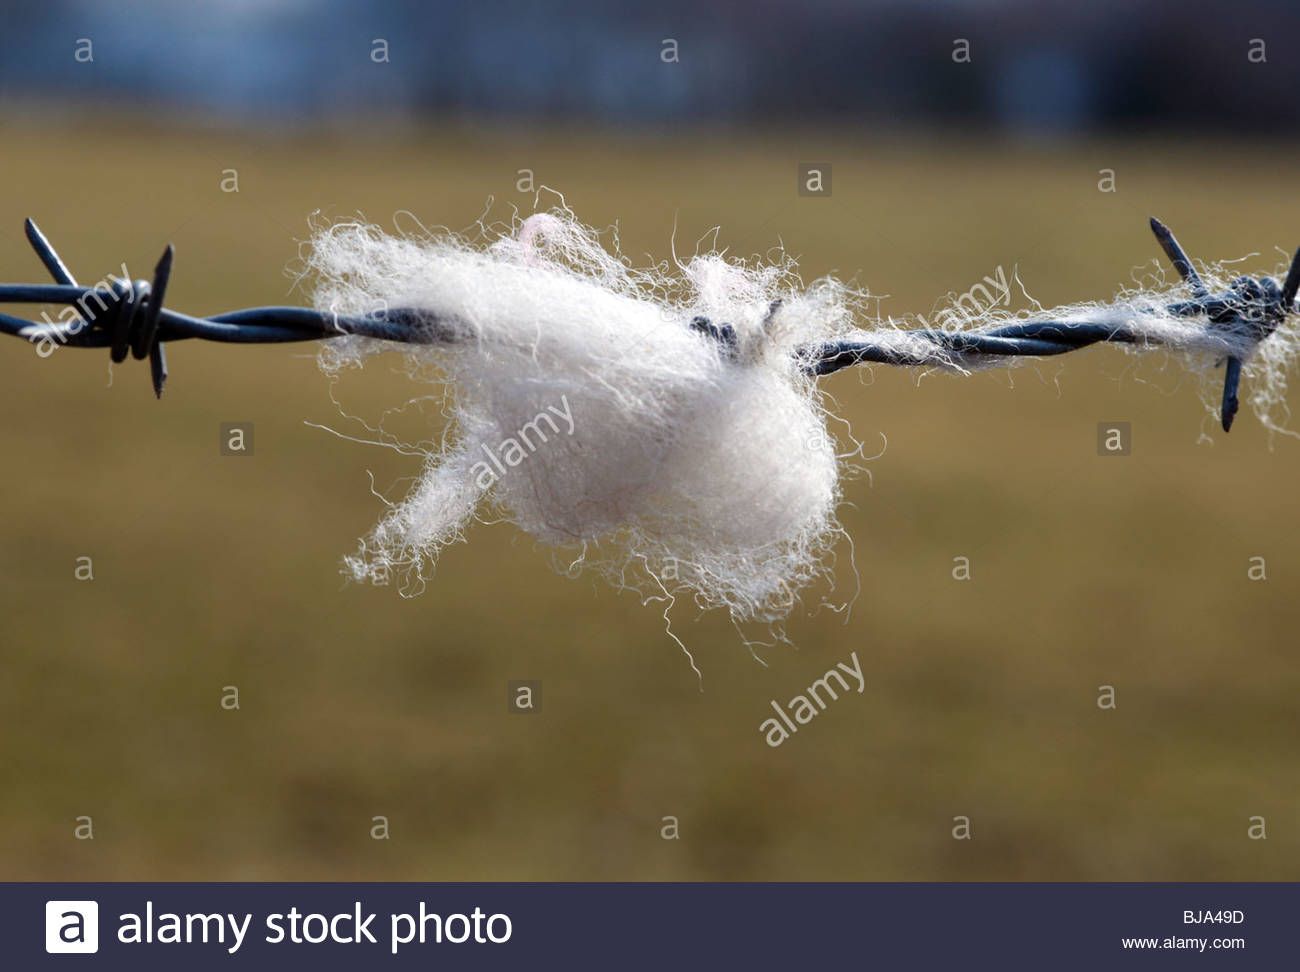 tufts of sheeps wool snagged on a metal barbed wire fence - Stock Image